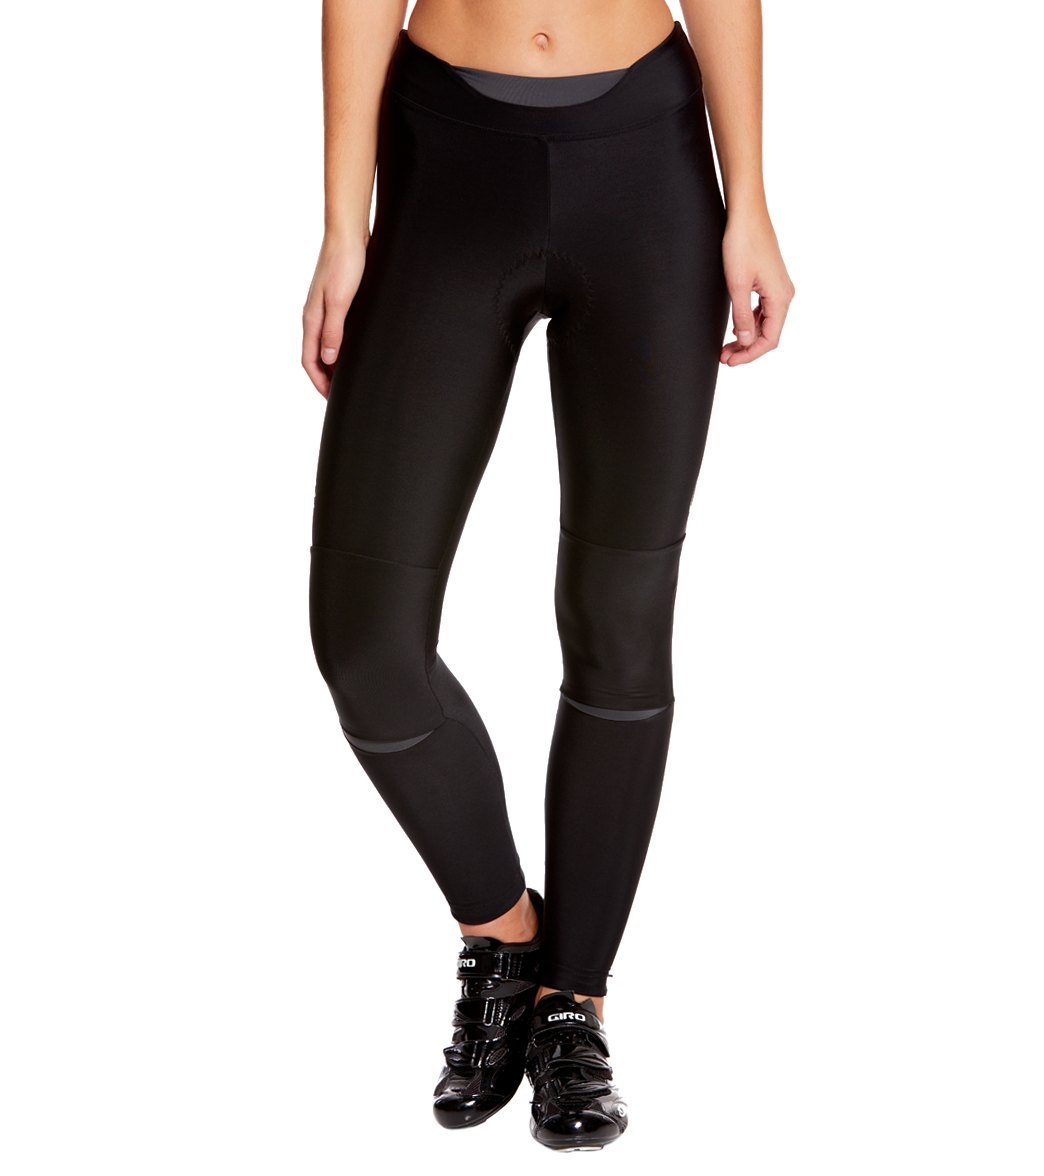 Castelli Women s Chic Tight at SwimOutlet.com - Free Shipping 99d34d438